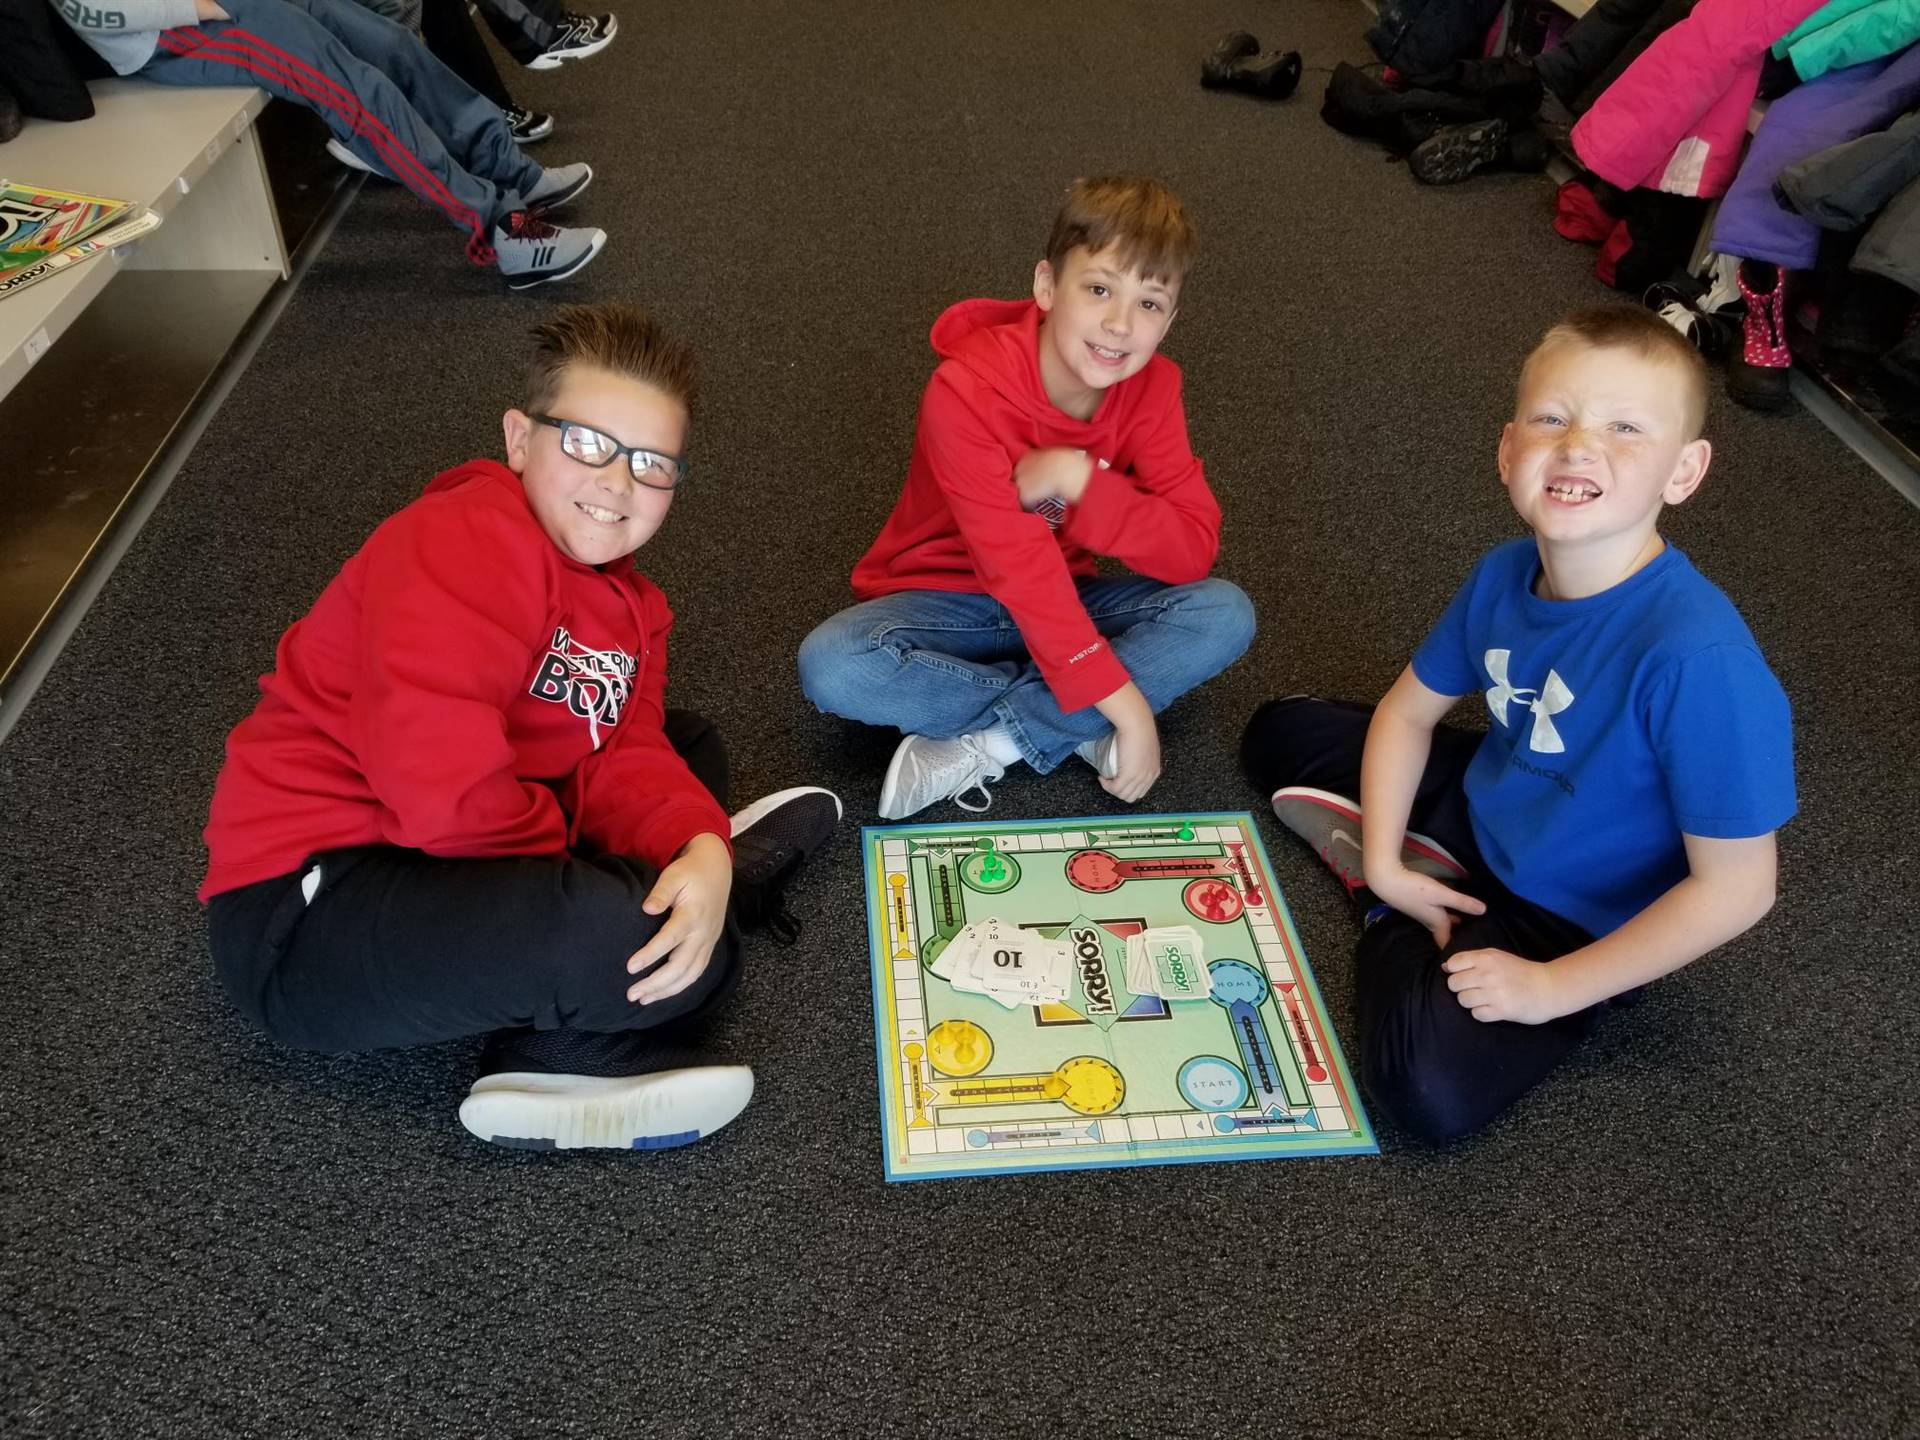 3 4th grade boys playing board game during indoor recess